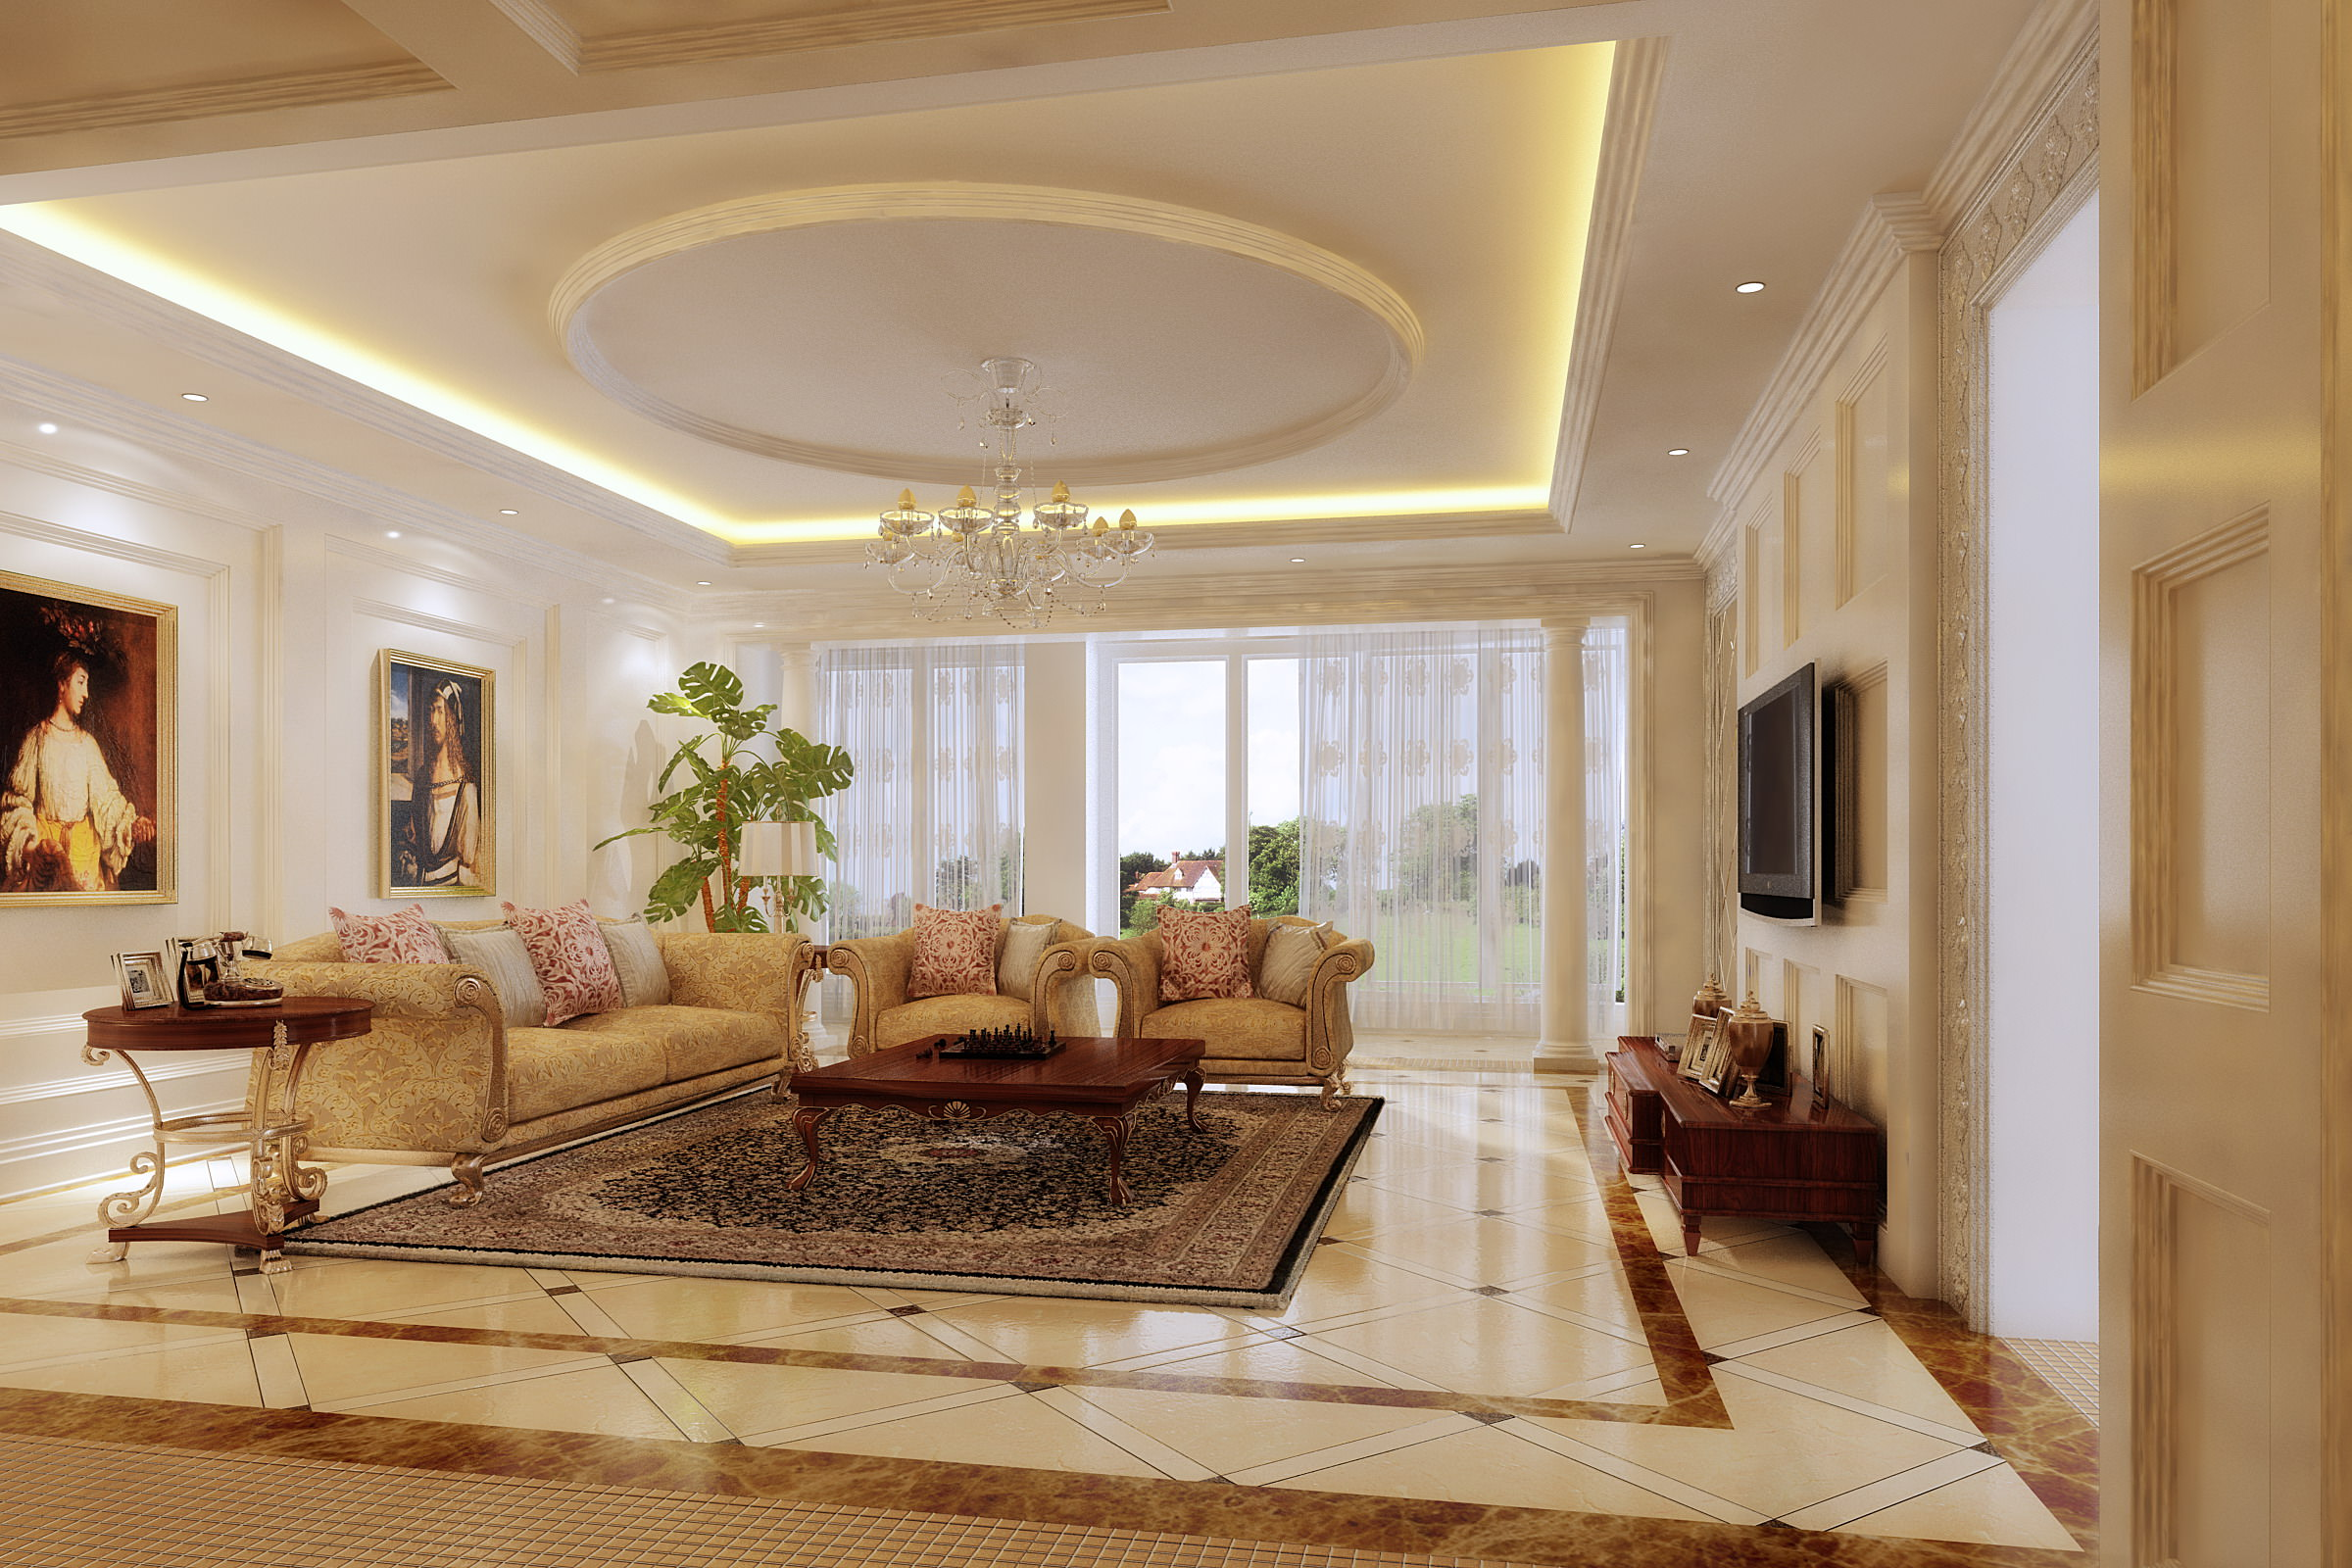 Living room with grand wall paintings 3d model max cgtrader for Living room 3d model